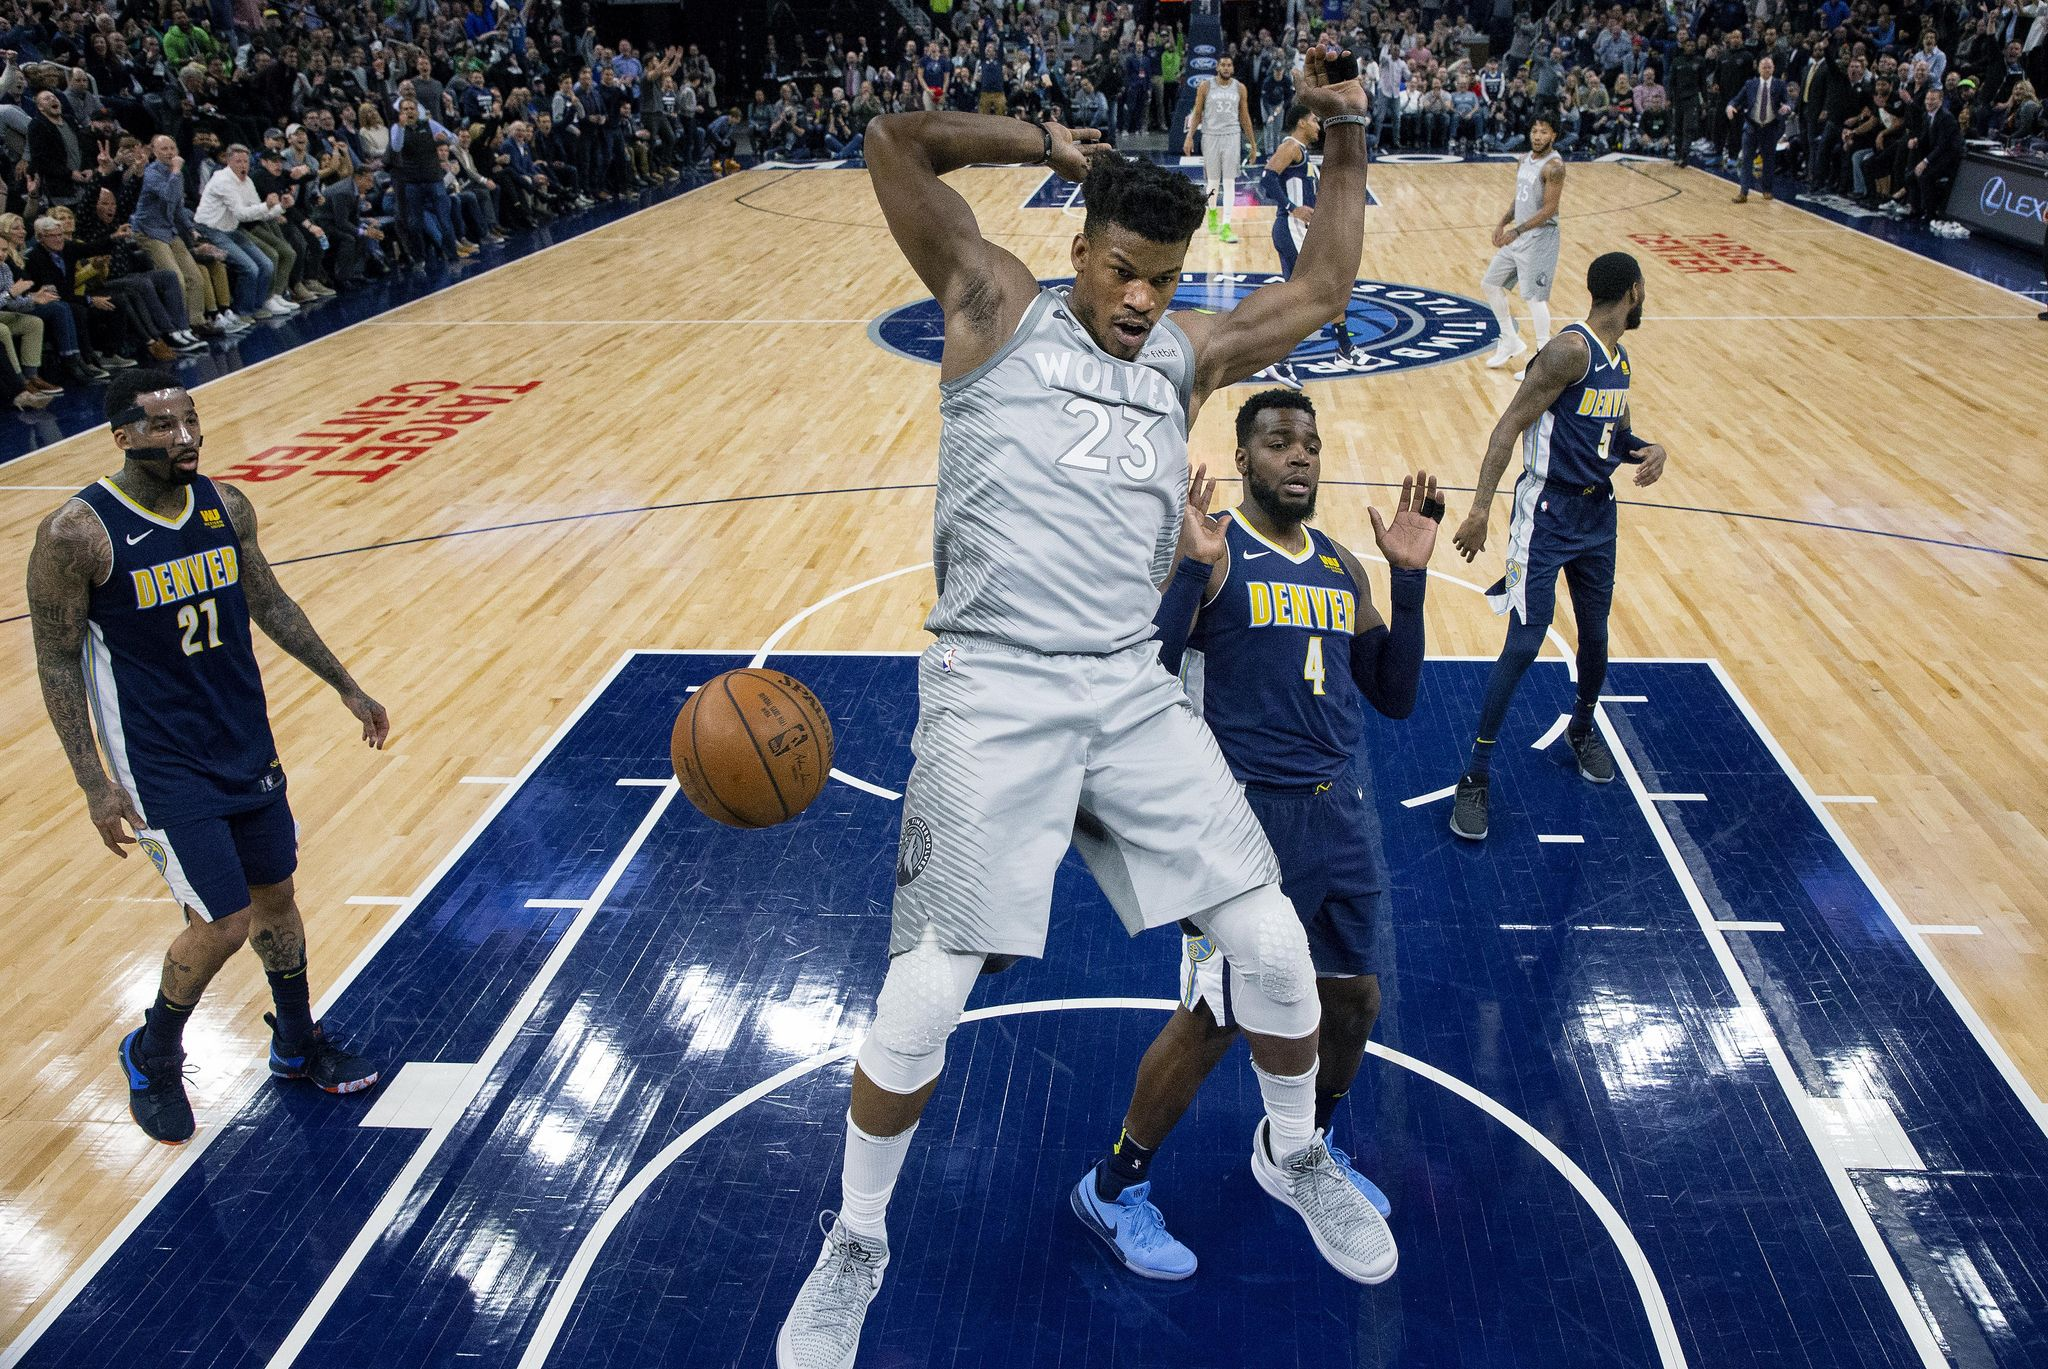 Nuggets_timberwolves_basketball_06504_s2048x1369